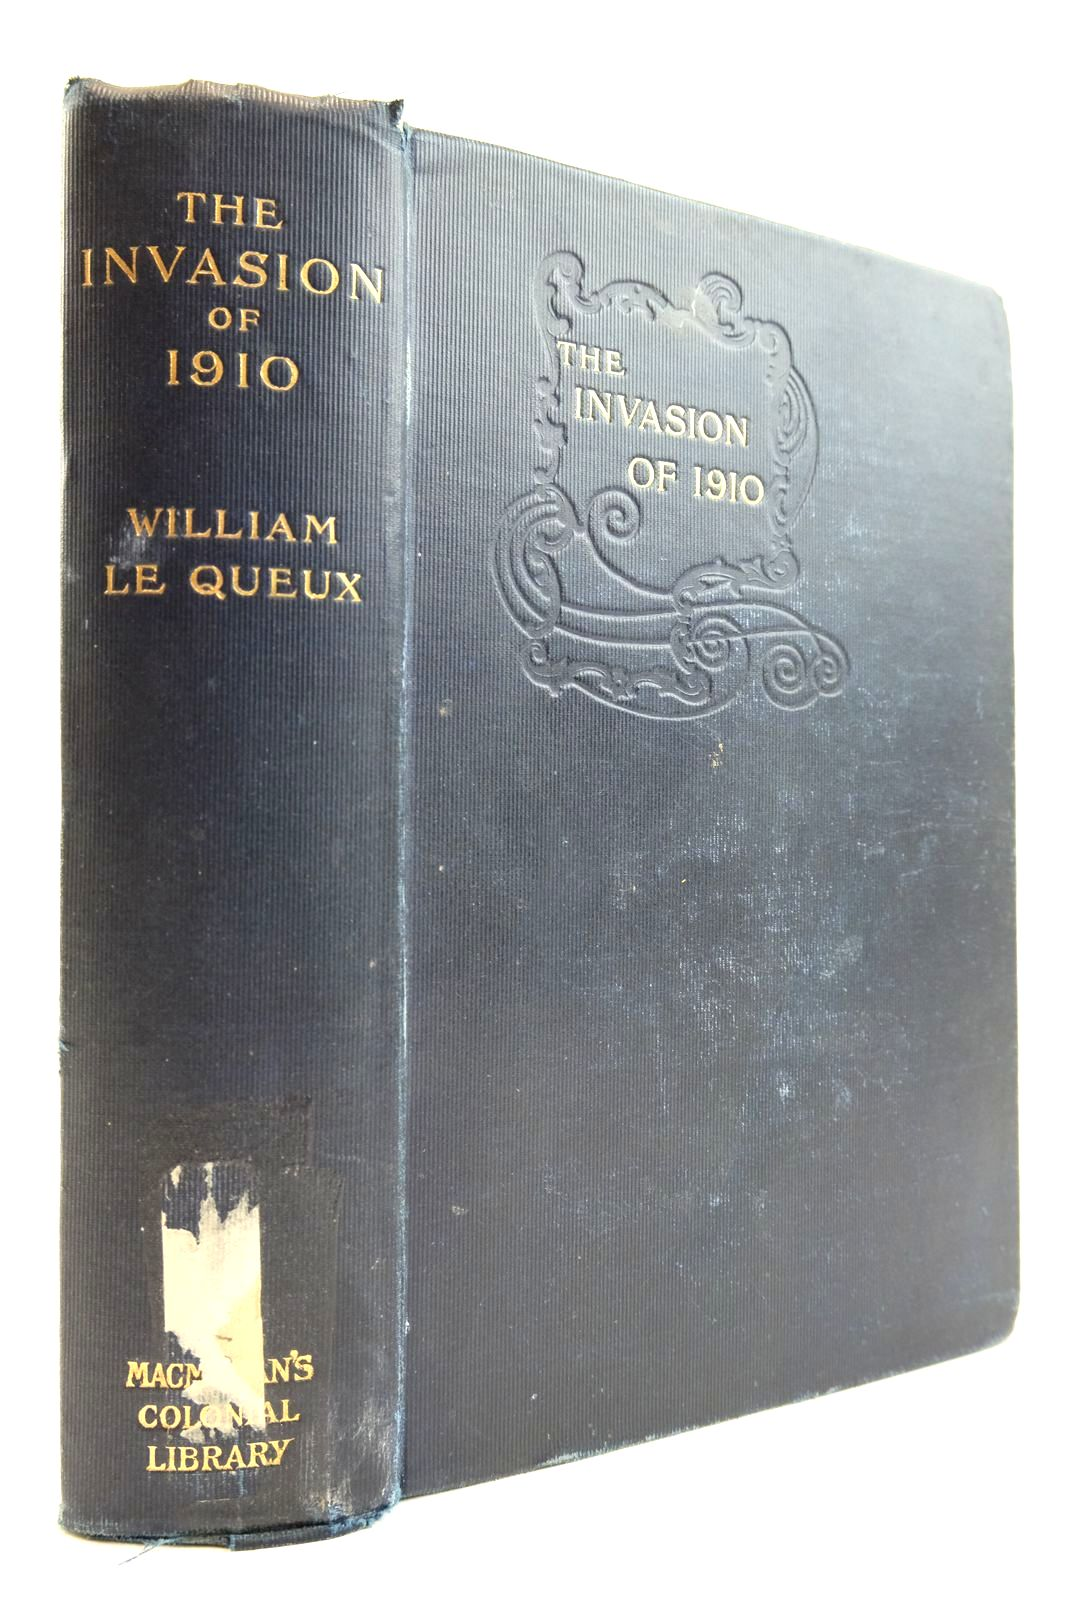 Photo of THE INVASION OF 1910 WITH A FULL ACCOUNT OF THE SIEGE OF LONDON- Stock Number: 2134006